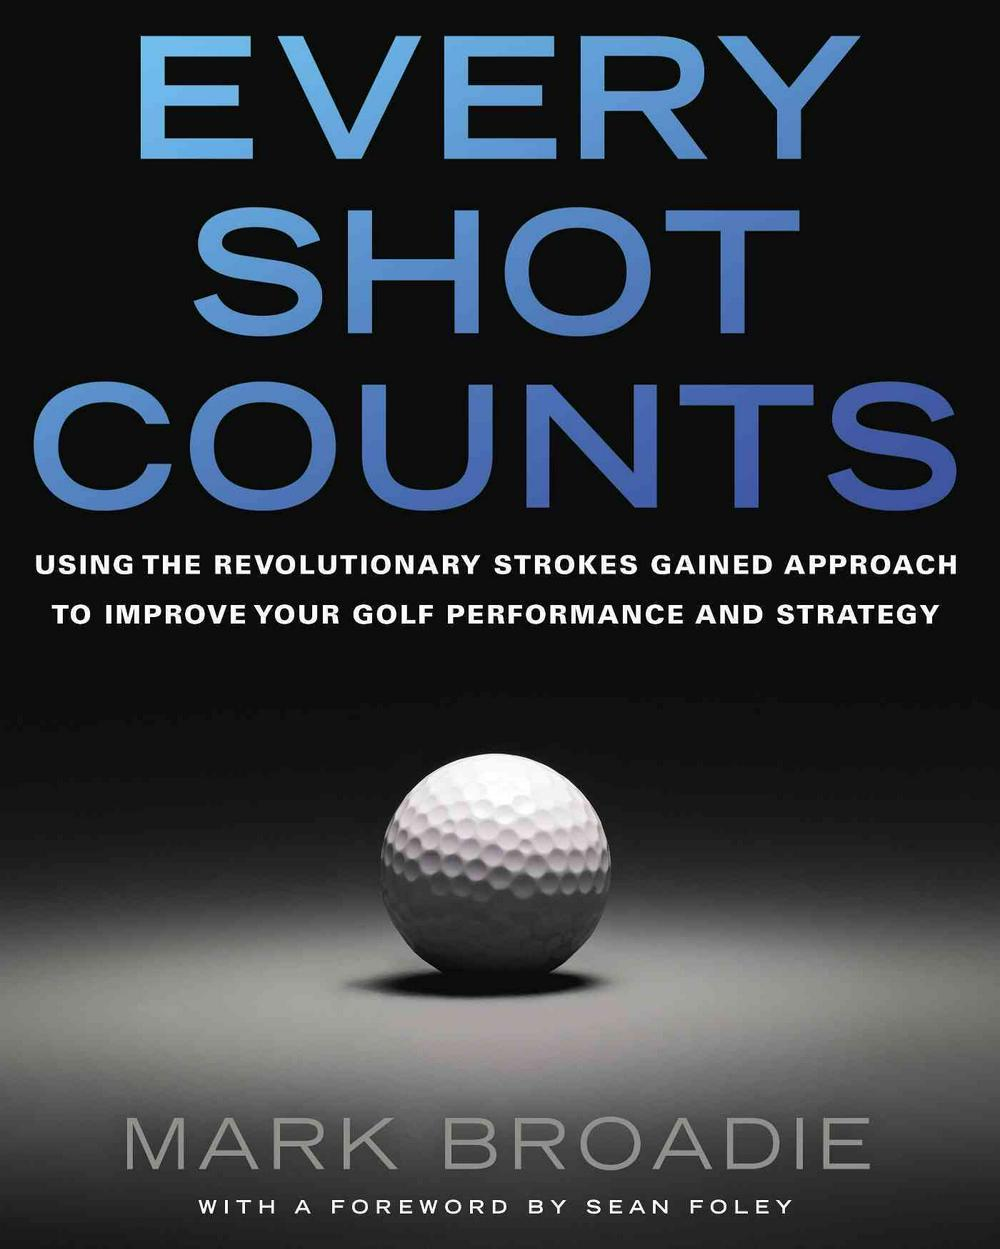 Every Shot Counts by Mark Broadie, ISBN: 9781592407507